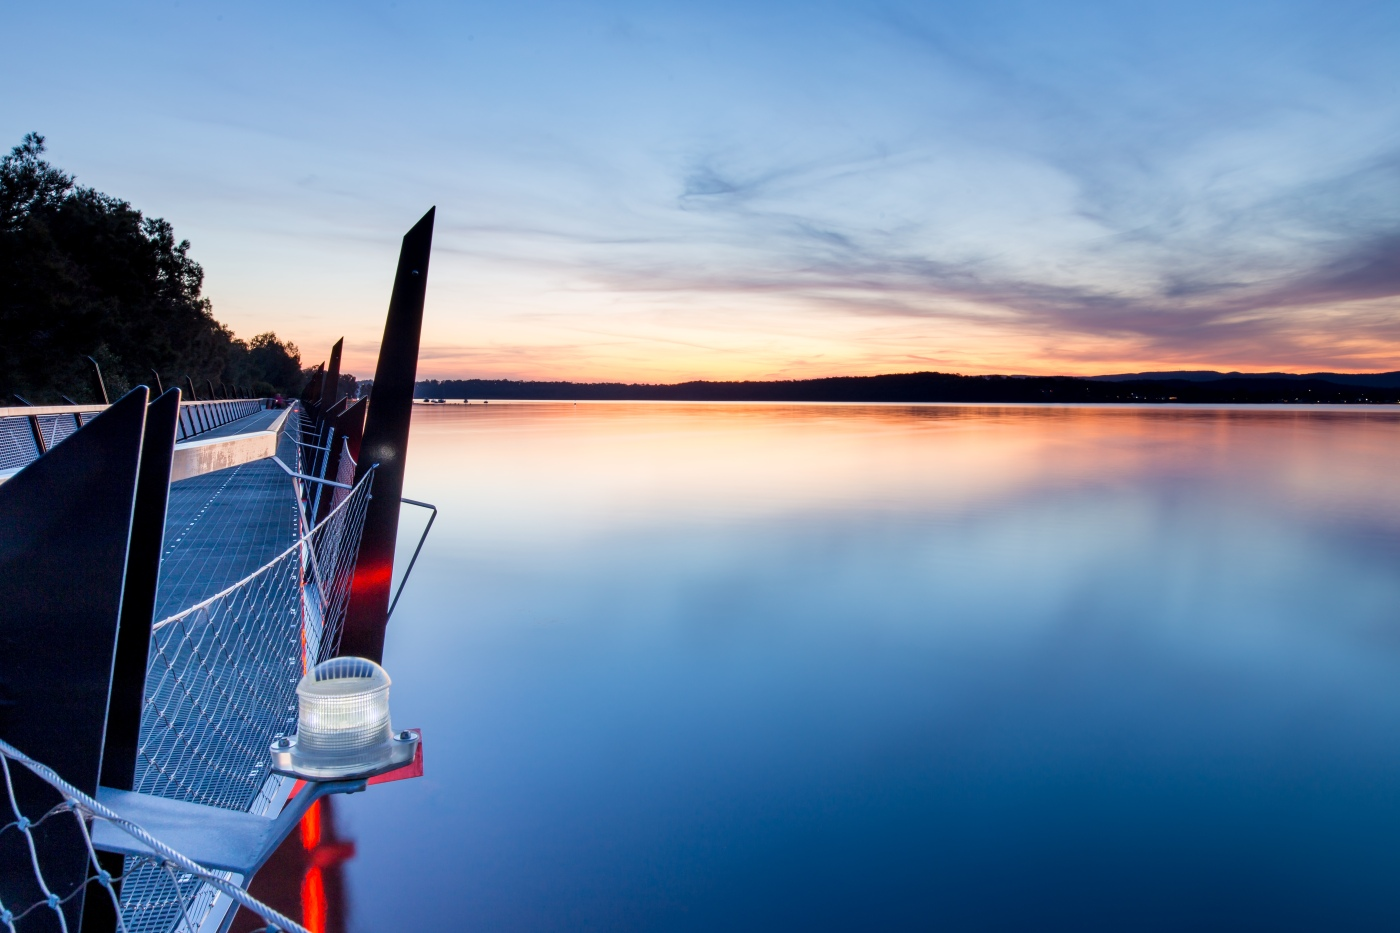 EARTHLYIMAGES lake sunset oct 15.jpg